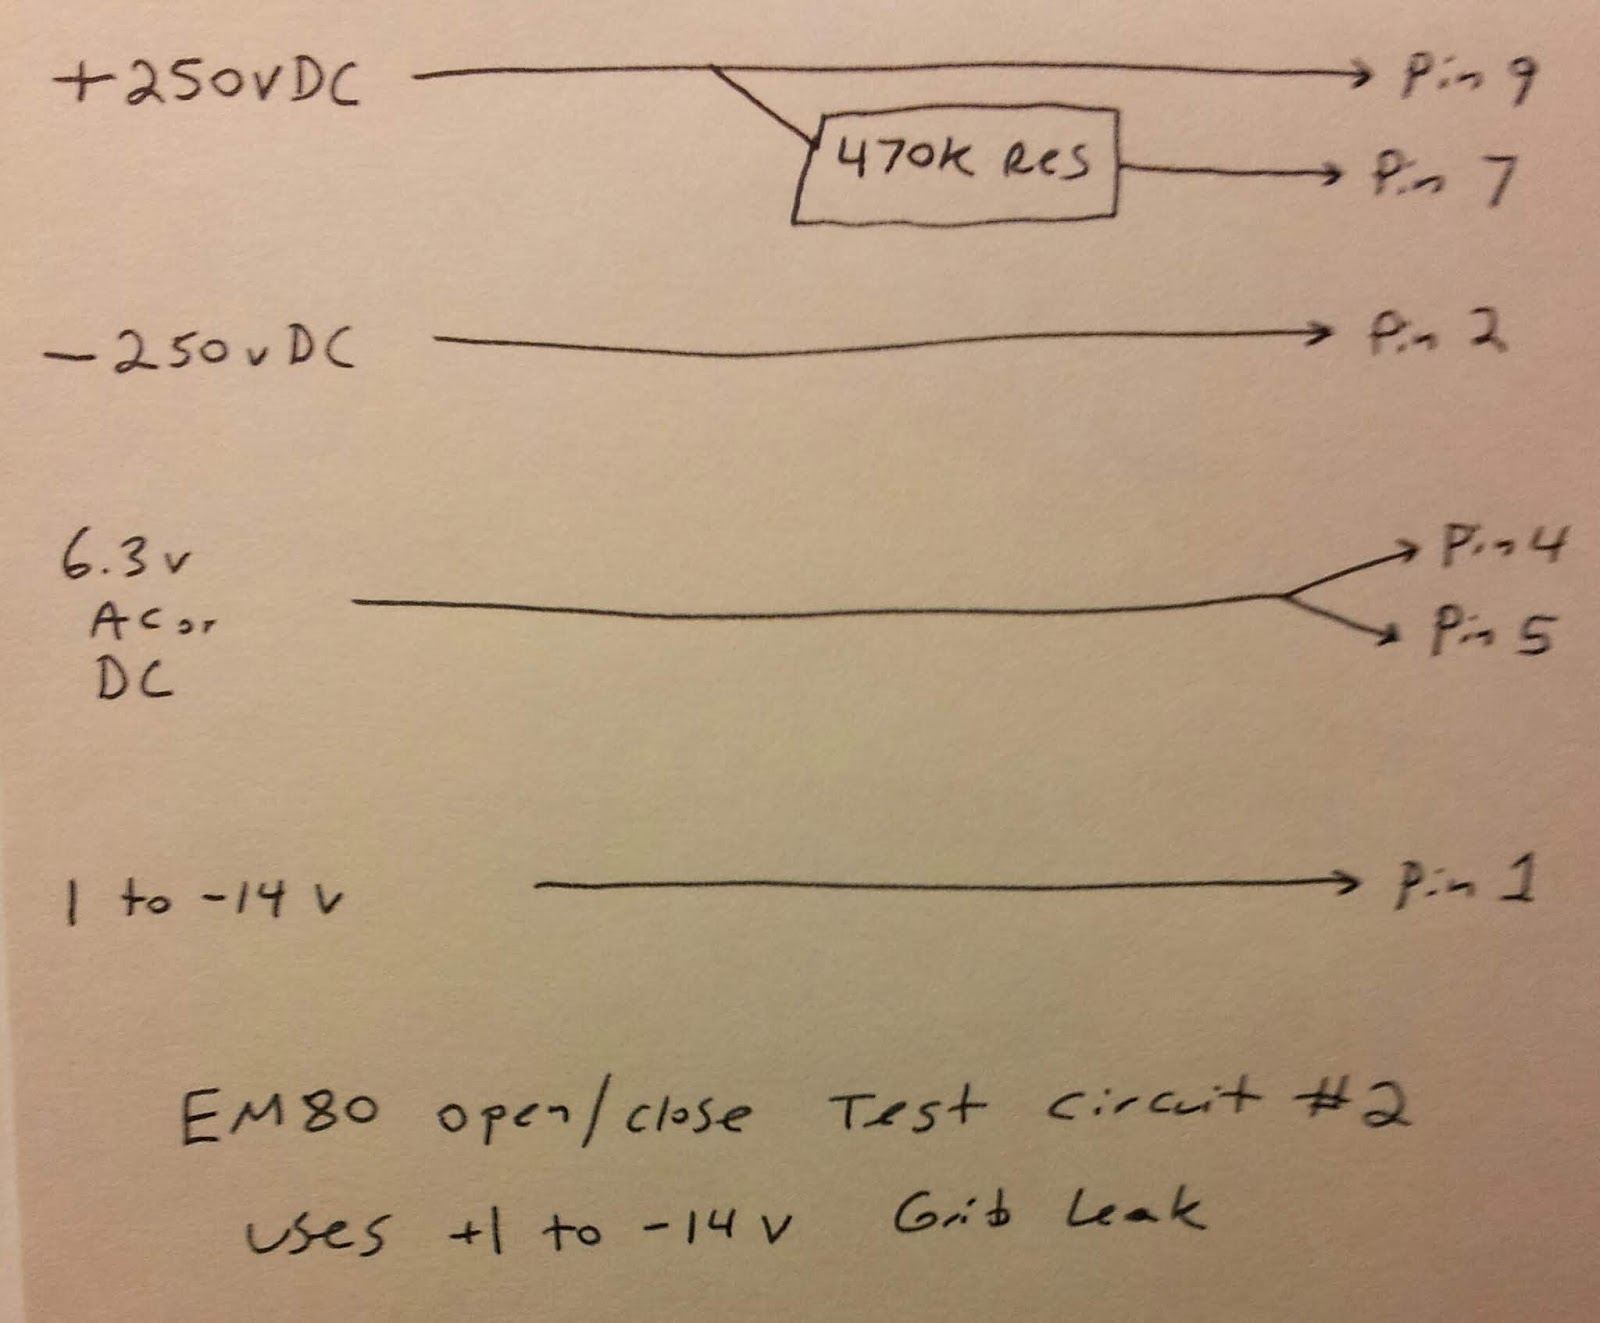 Science Optics June 2018 250vdc Wiring Diagram Heres More Official Ways To Open Close The Eye But I Havent Tried Them Yet Mainly Because Dont Have An Old Timey Radio With Avc Auto Volume